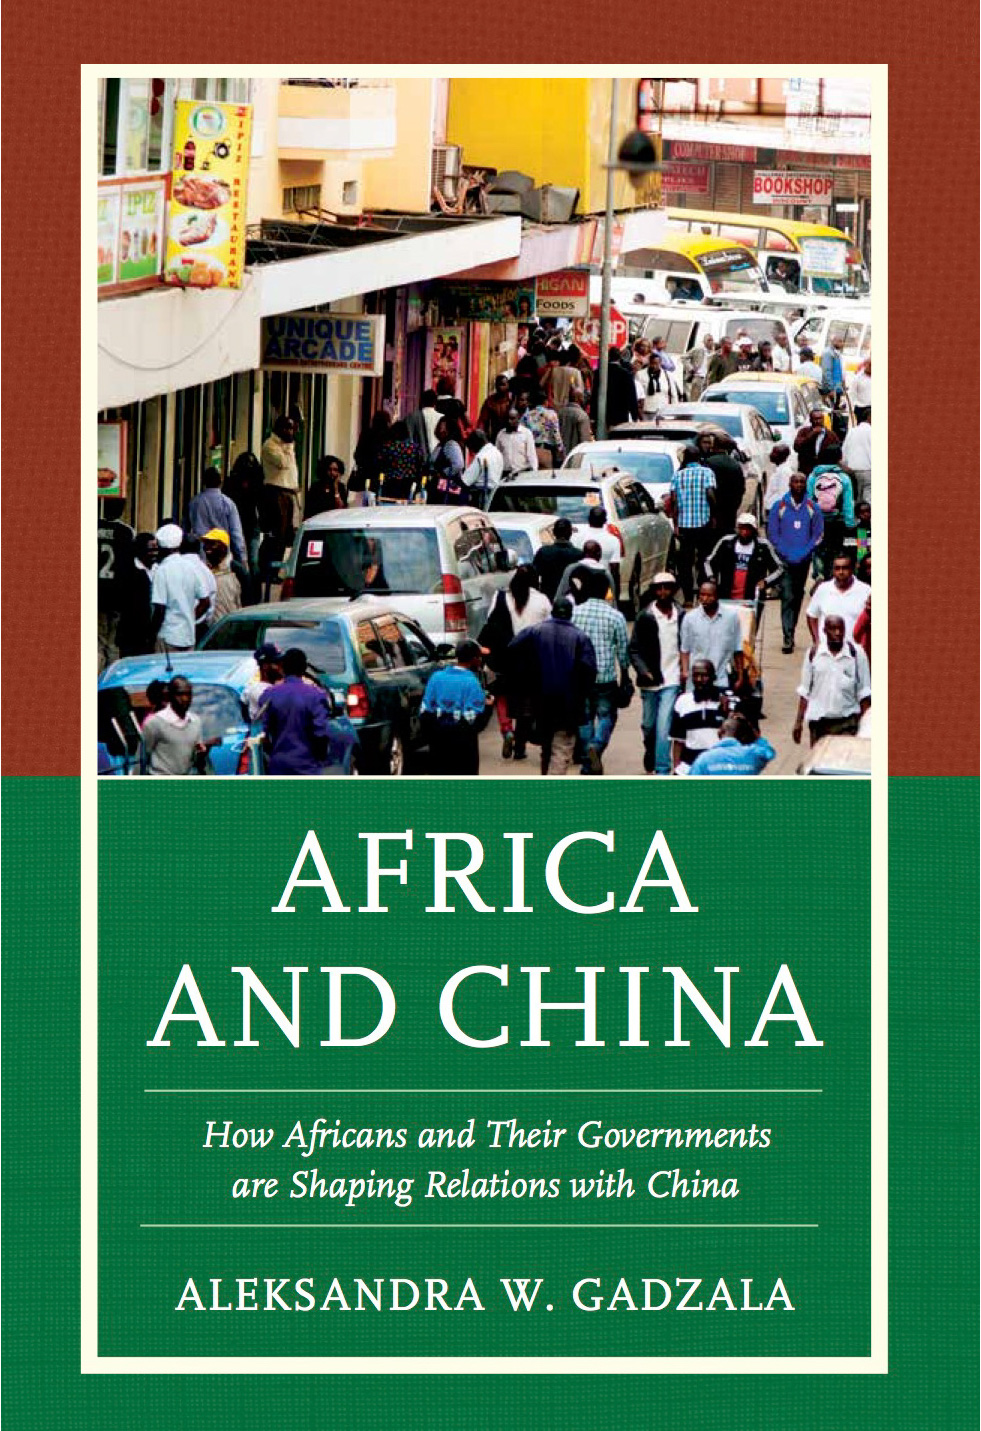 How Africans and their governments engage China